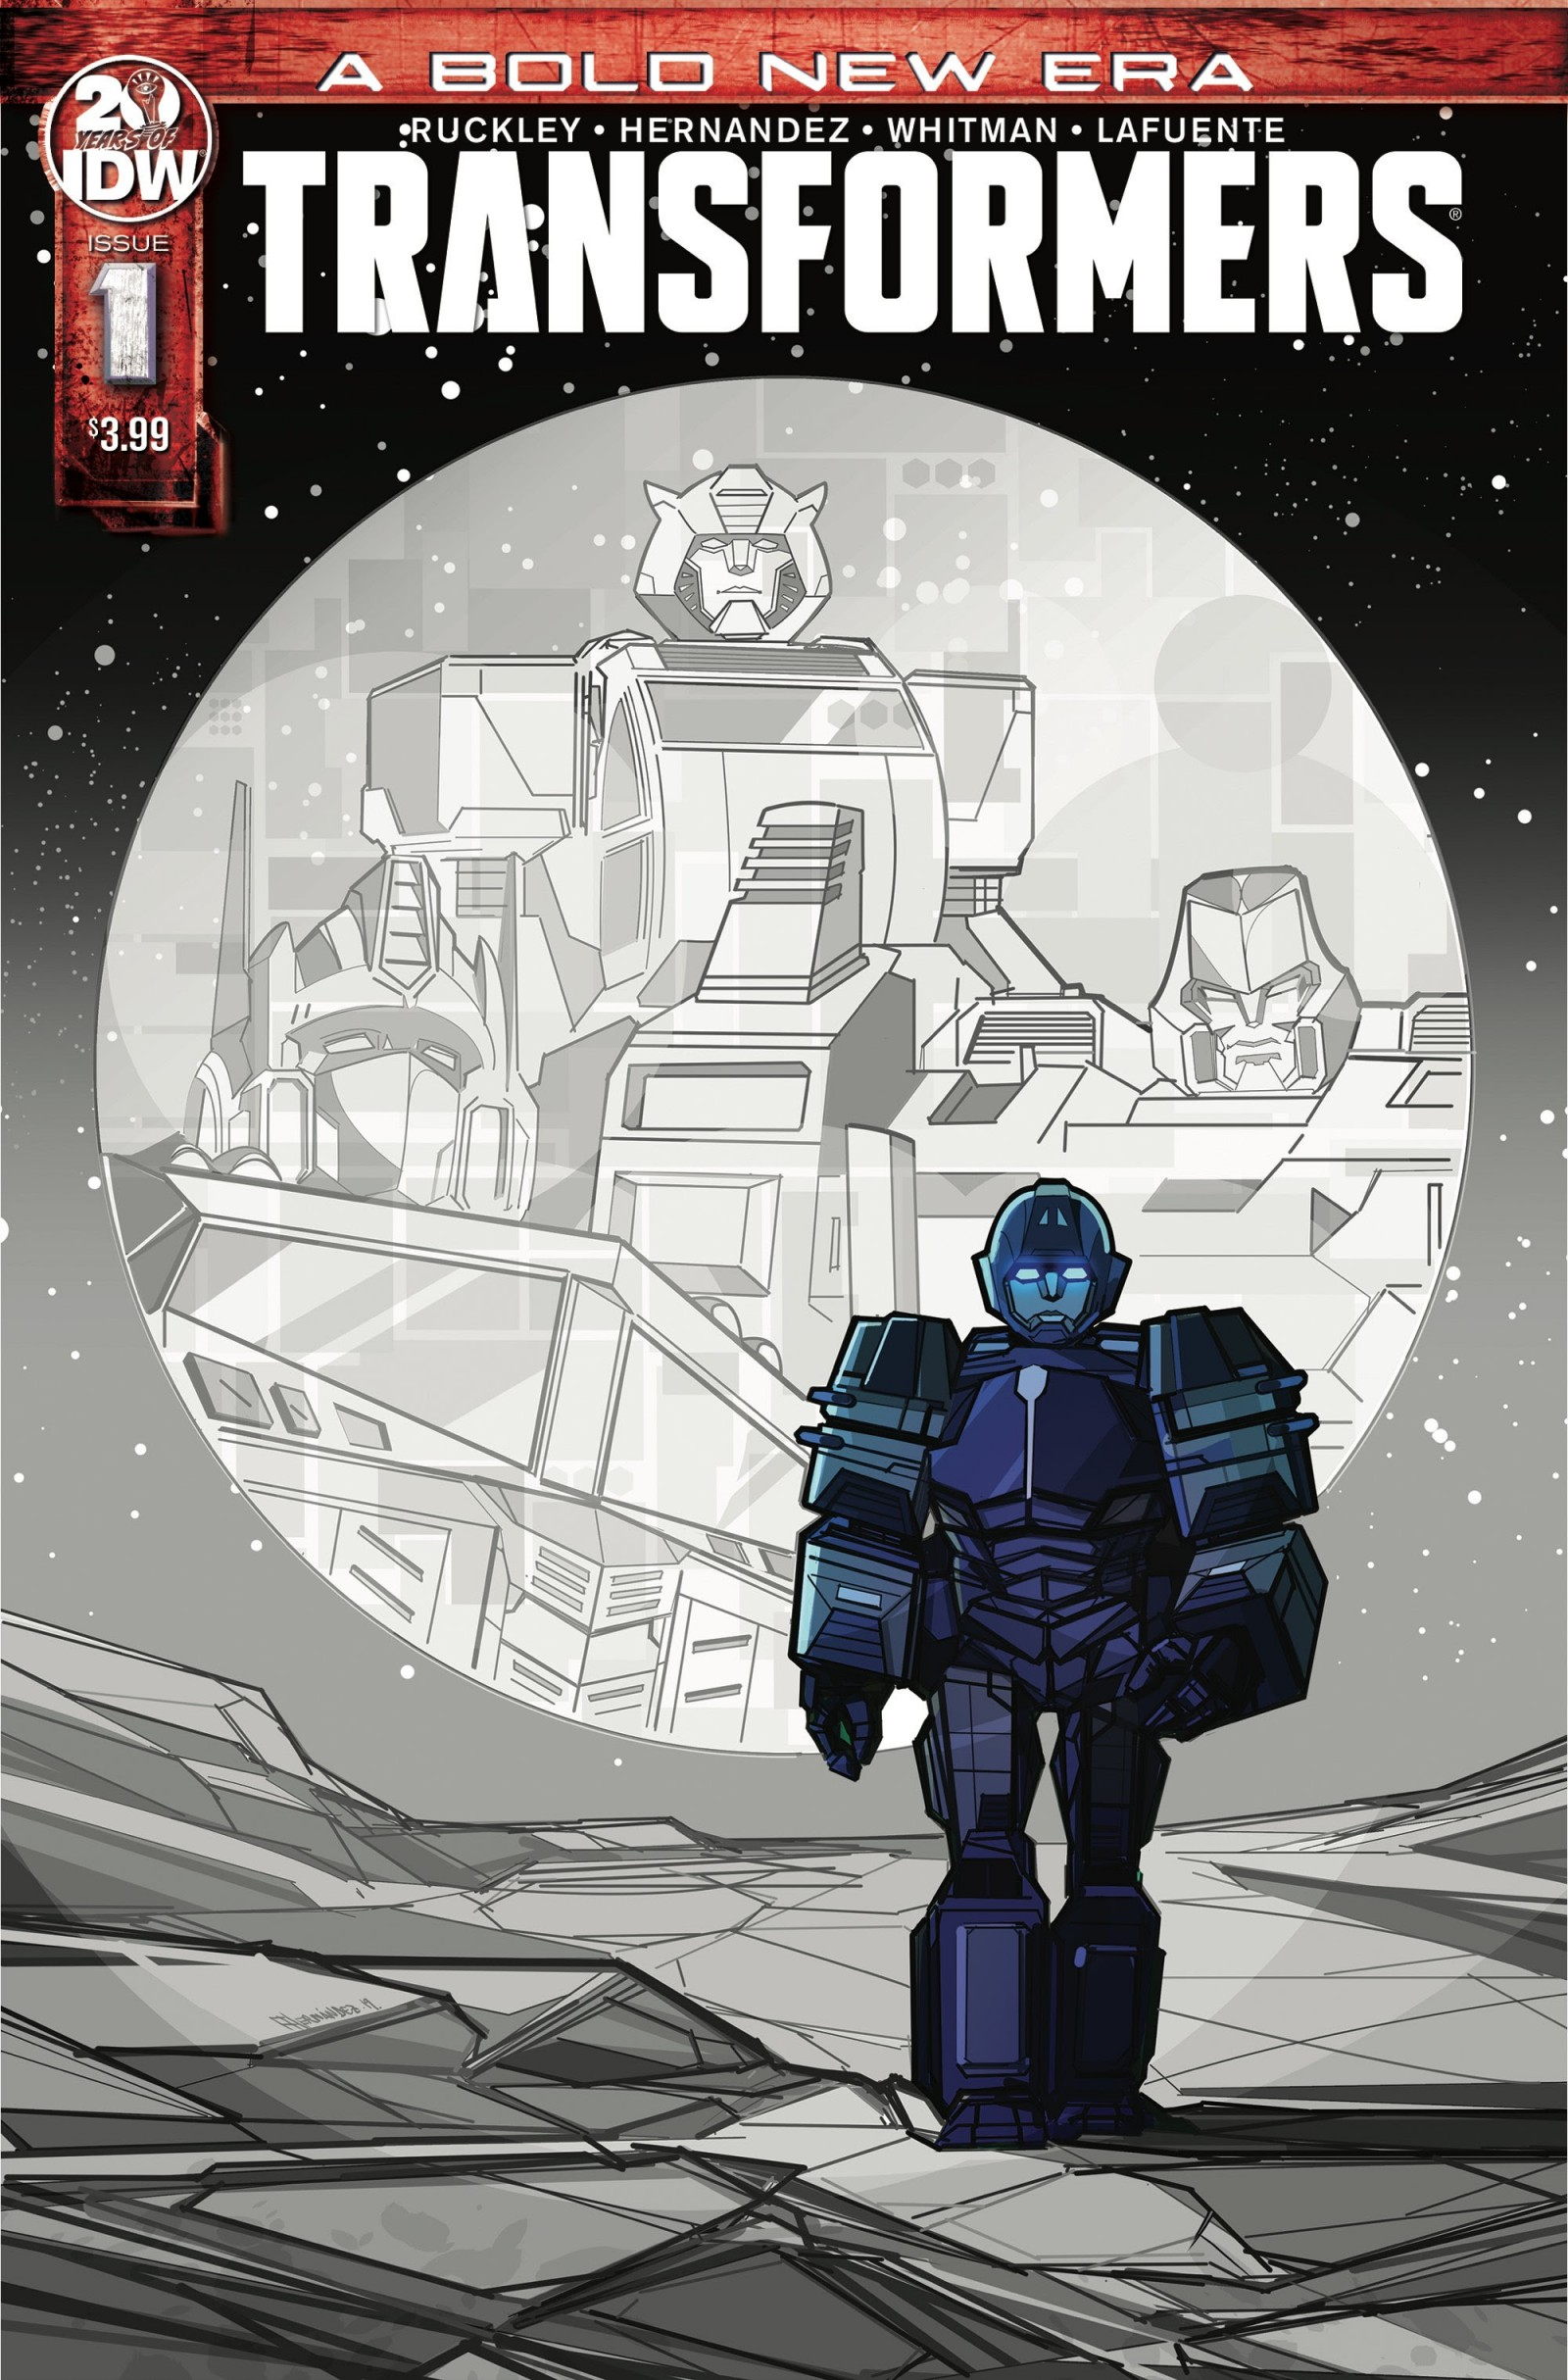 Transformers News: IDW Announces Transformers #1 Re-Print After Sold Out Debut Issue